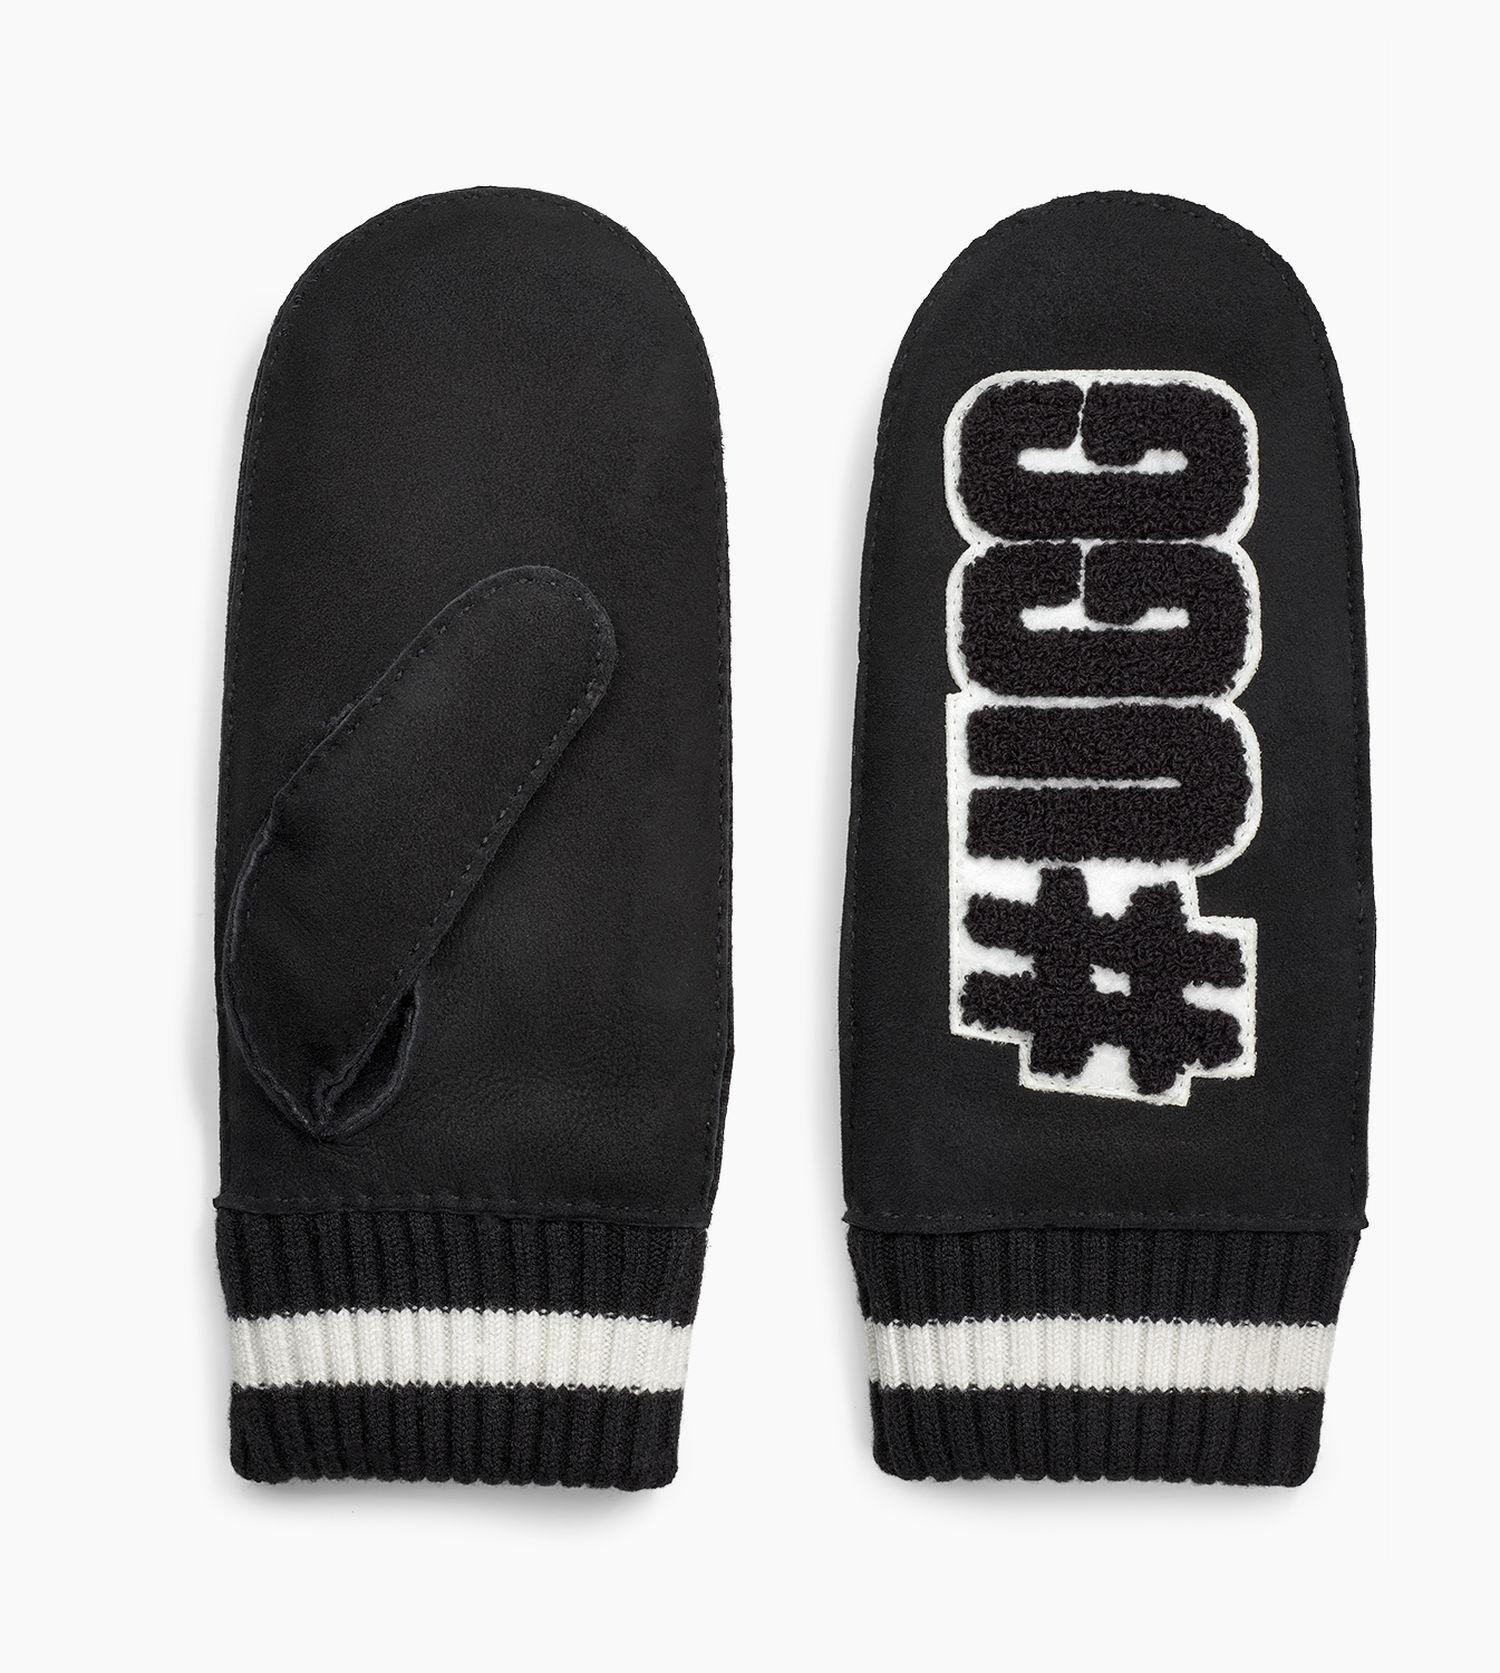 2cfddf449ae UGG Women's #life Patch Logo Mittens in Black - Lyst